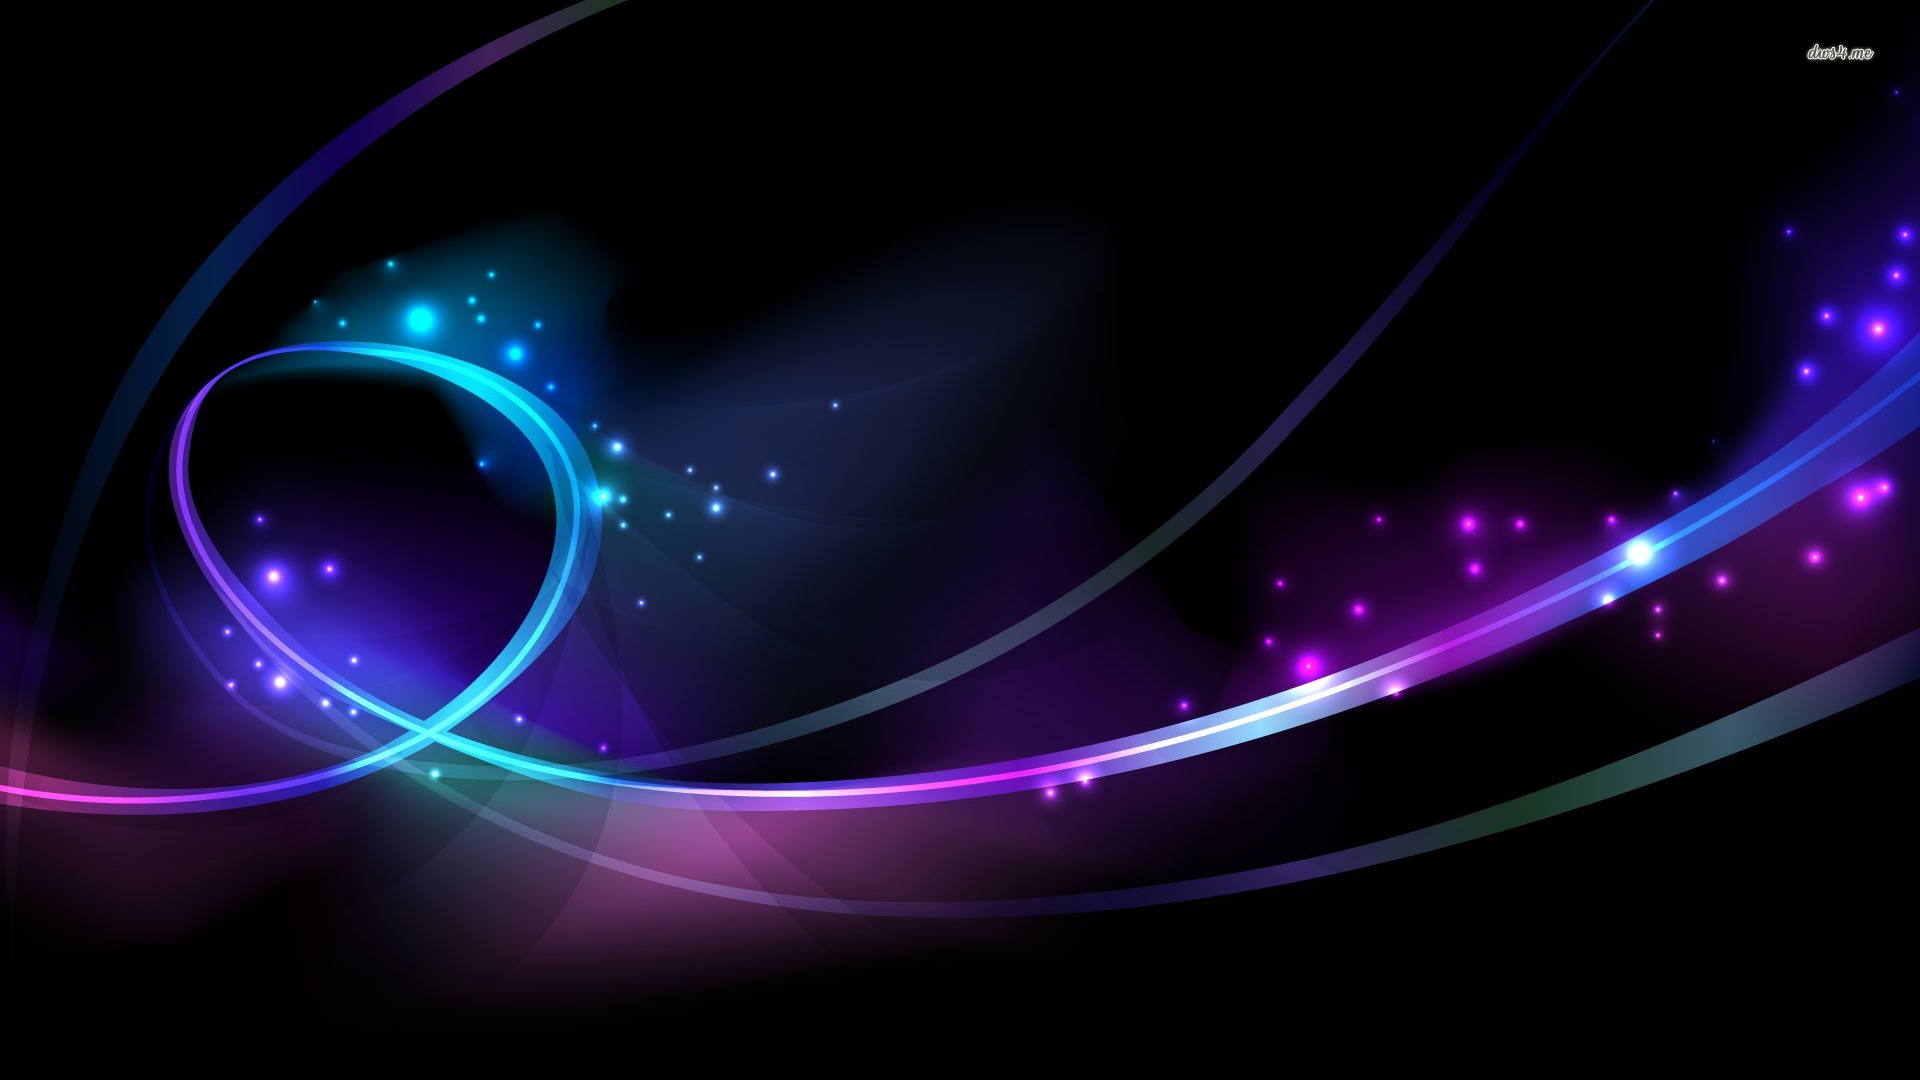 ... Glowing Circles and Curves wallpaper 1920x1080 ...